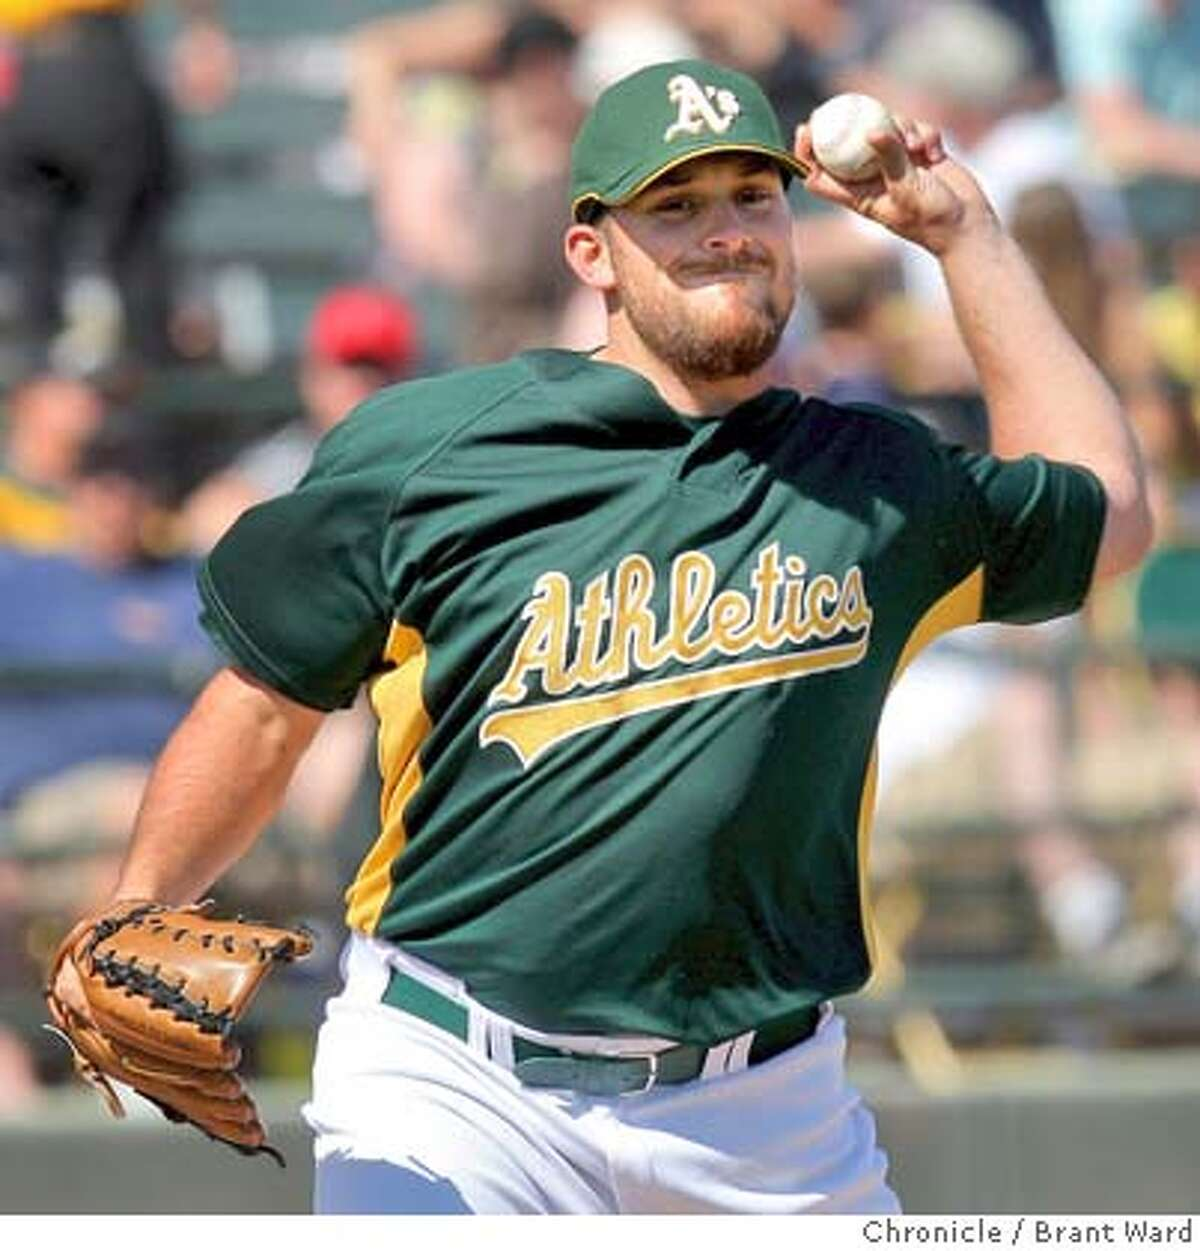 A's starting pitcher Dana Eveland threw over to first to try to catch a runner early in the game. On March 2, 2008 the Oakland Athletics played the Colorado Rockies in a spring training exhibition game at Phoenix Municipal Stadium. Photo by Brant Ward / San Francisco Chronicle